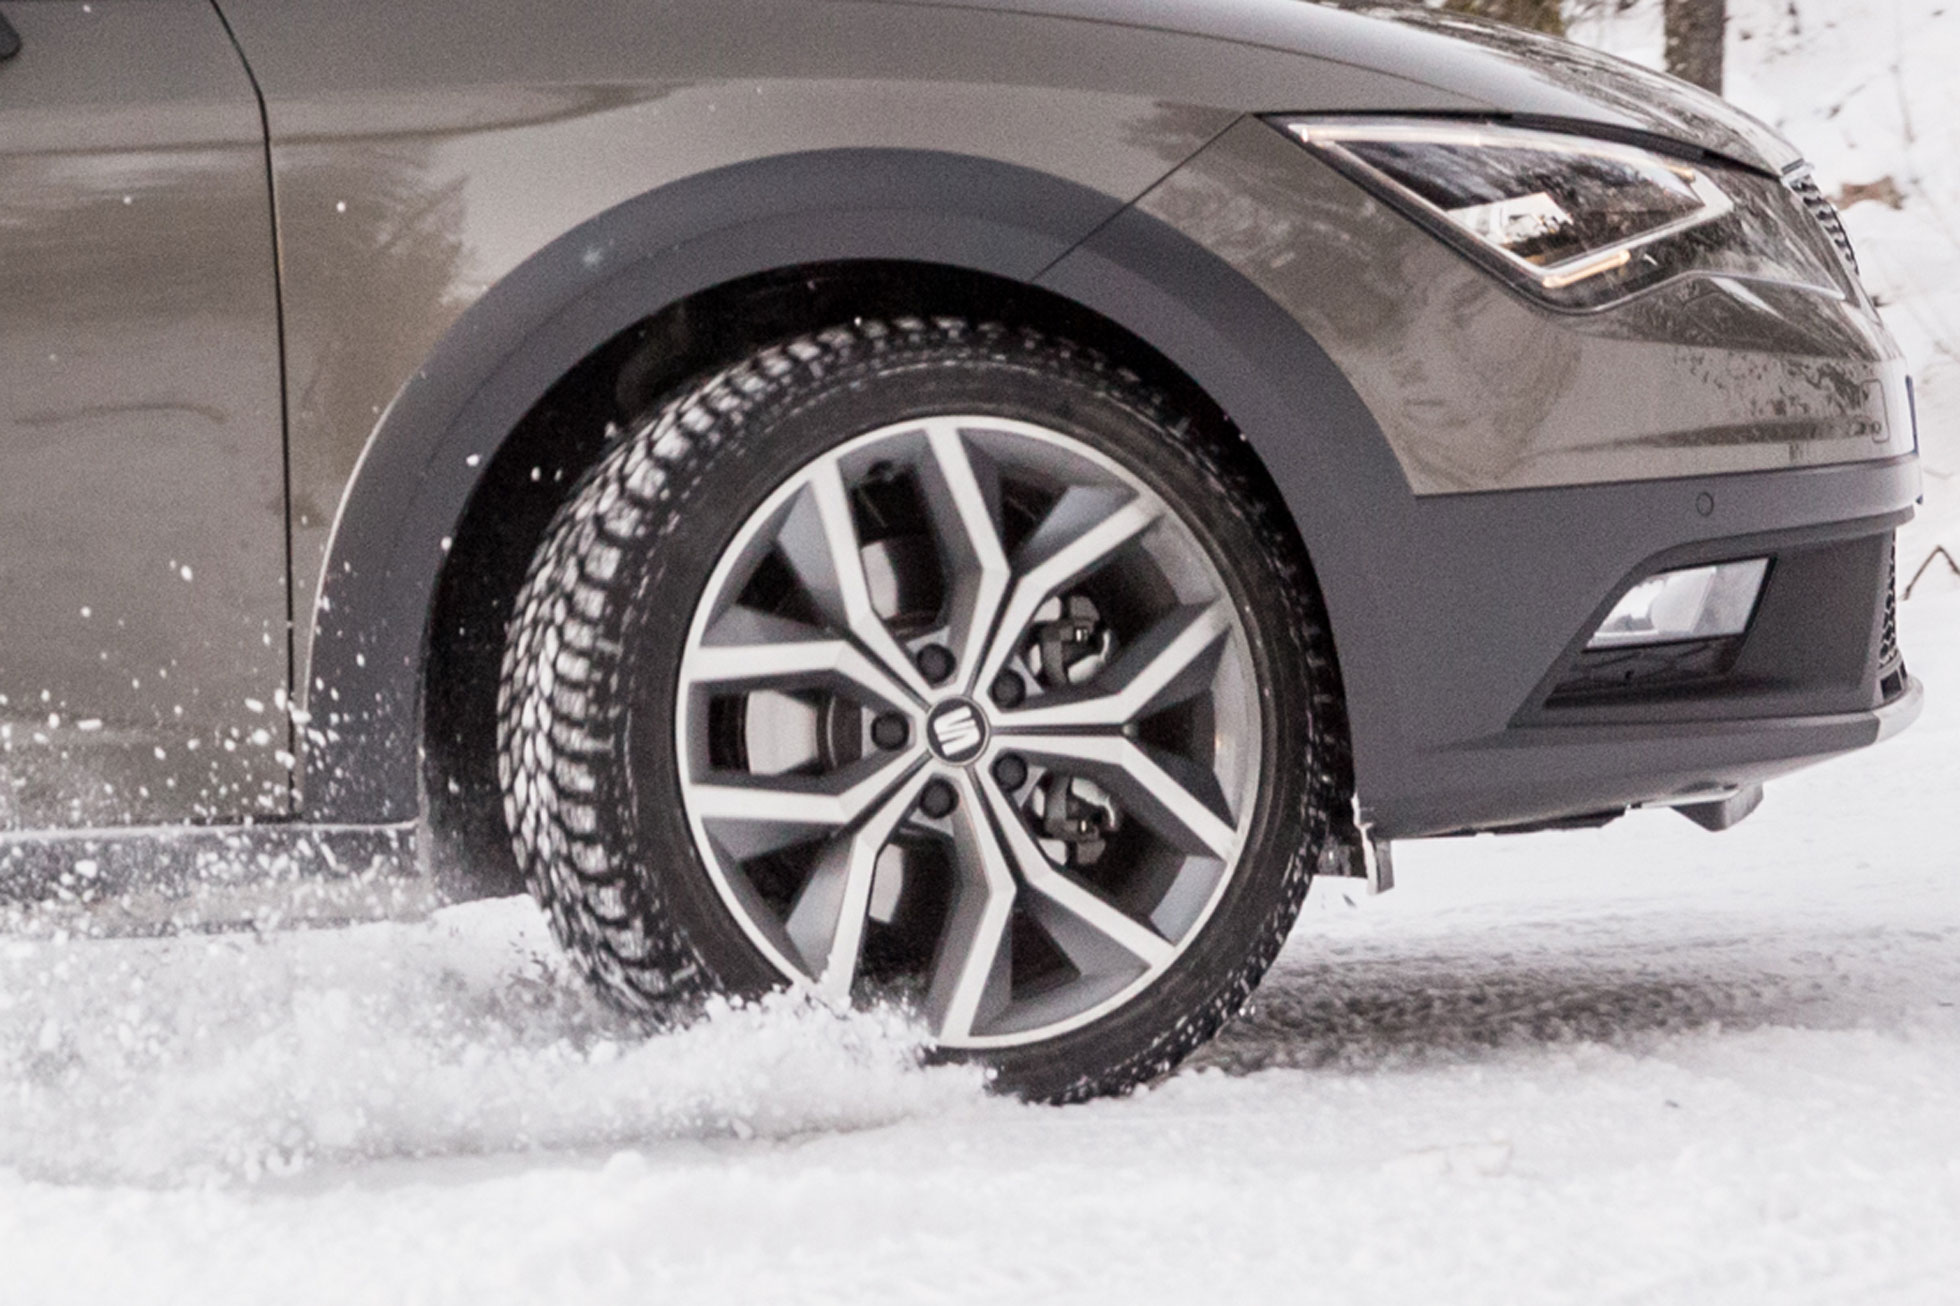 The winter tyre diaries: should I change my tyres?